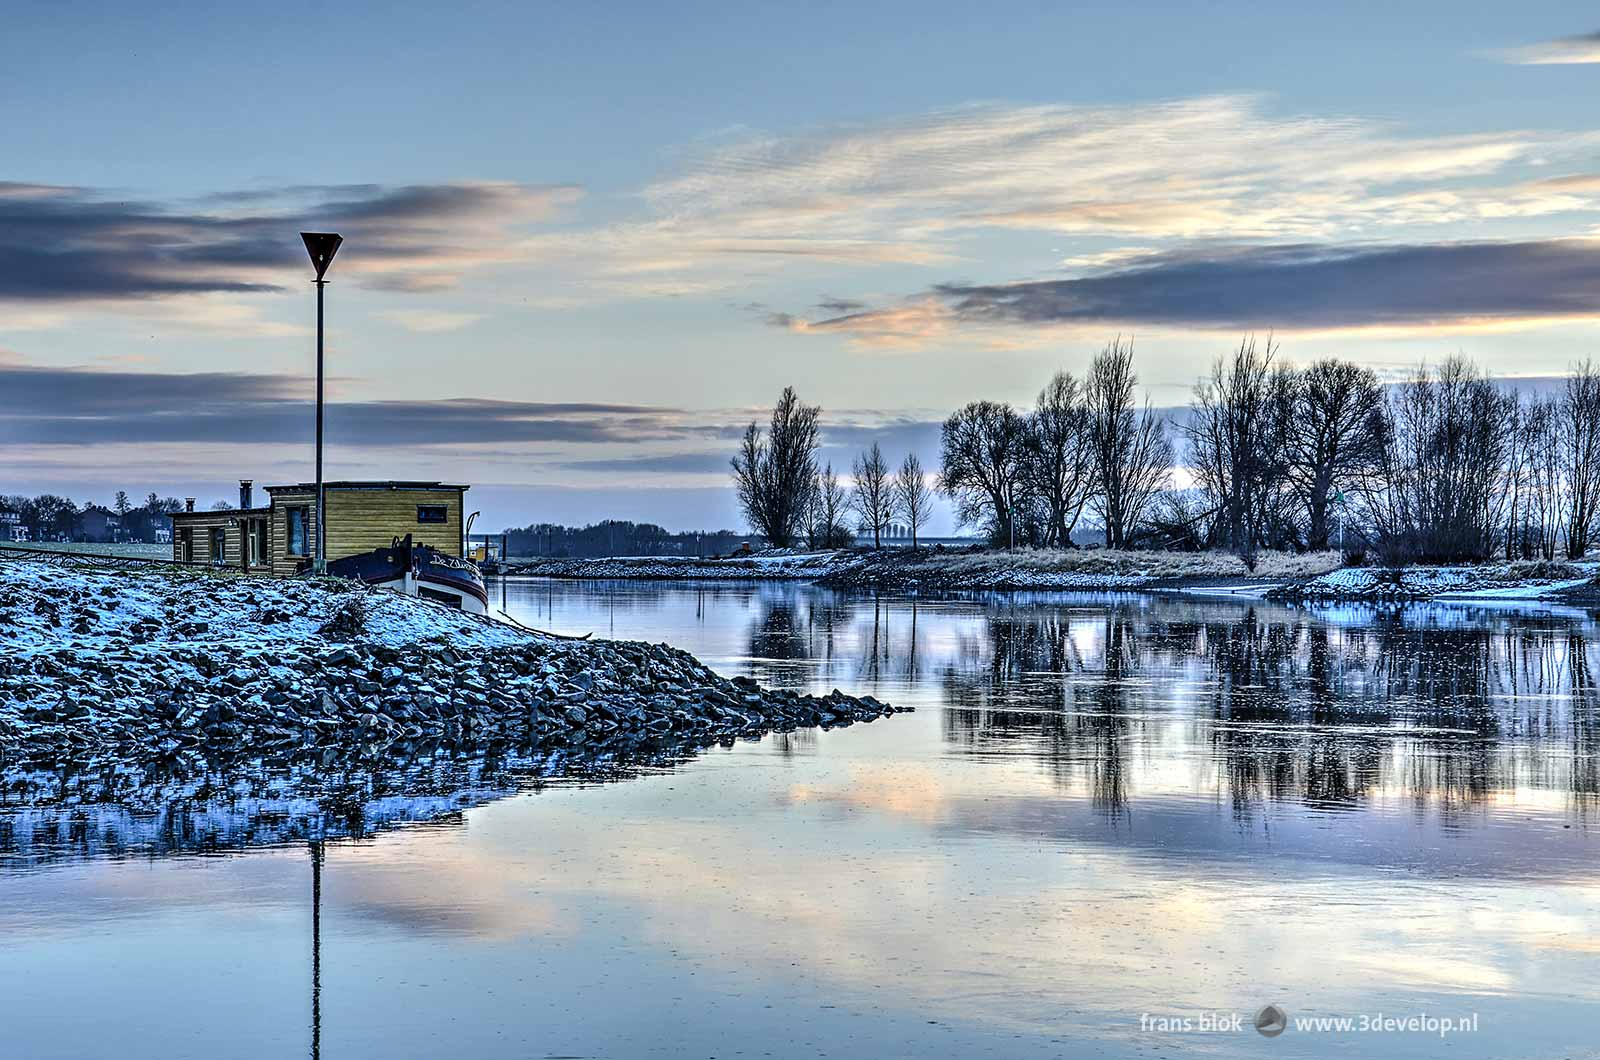 Photo of the IJssel river near Zutphen on a winter afternoon around sunset, with a yellow houseboat and snow on the riverbanks